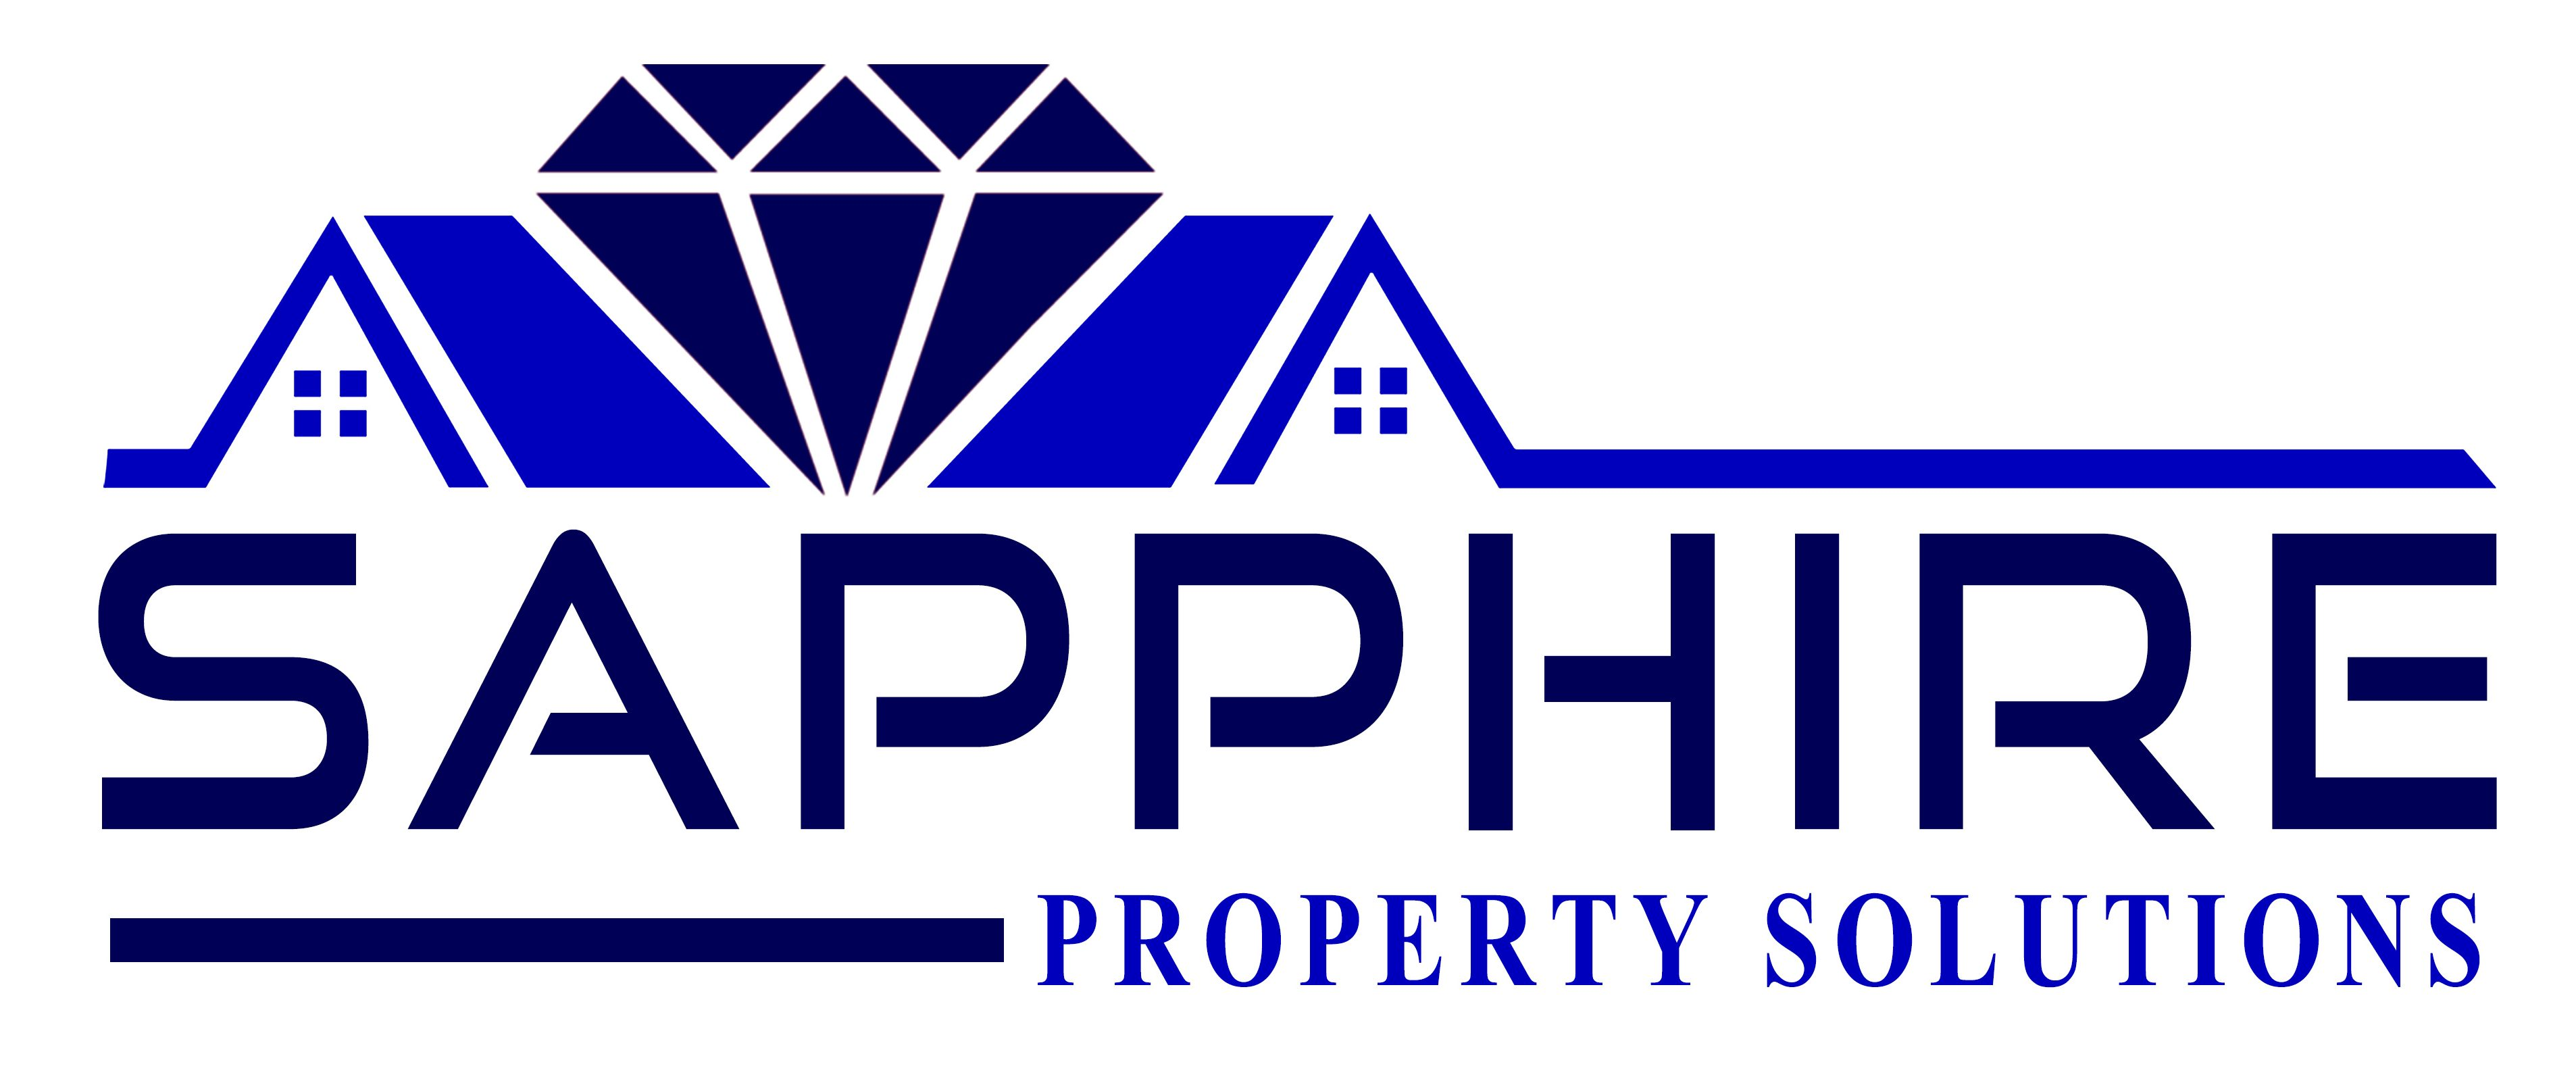 Sapphire Property Solutions